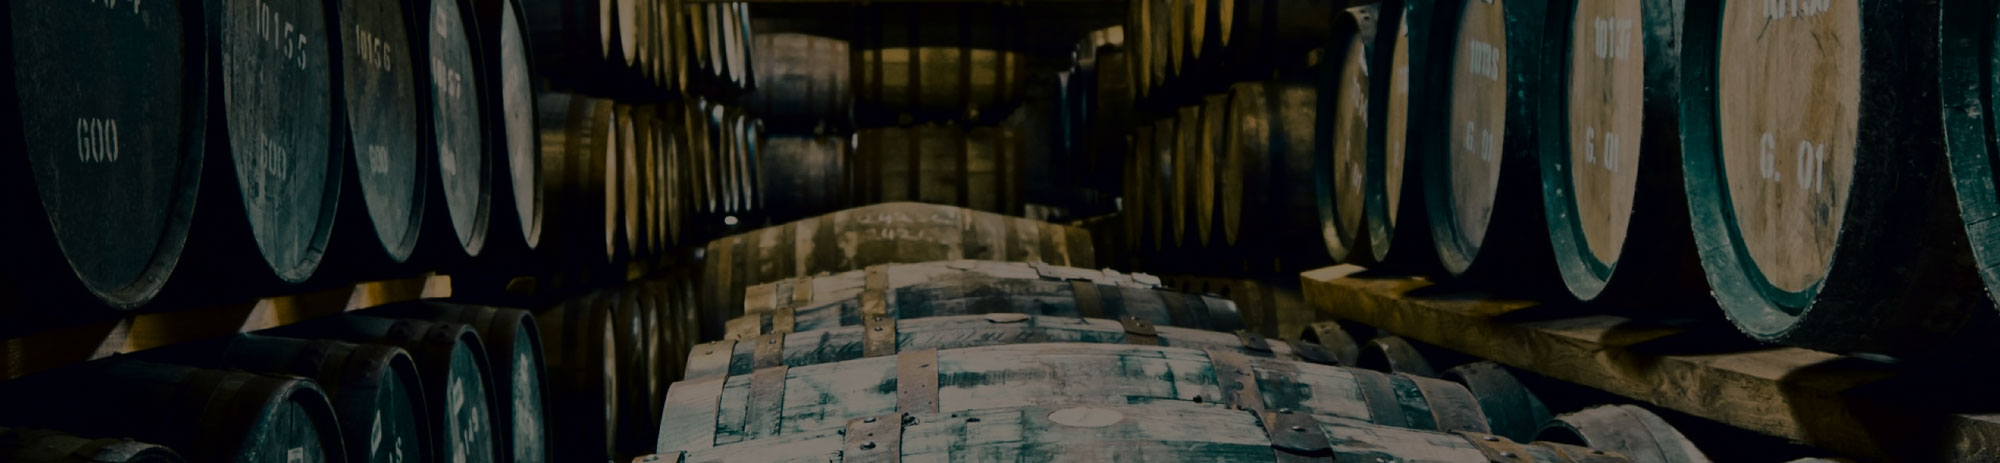 Sell your Whisky Cask Barrels